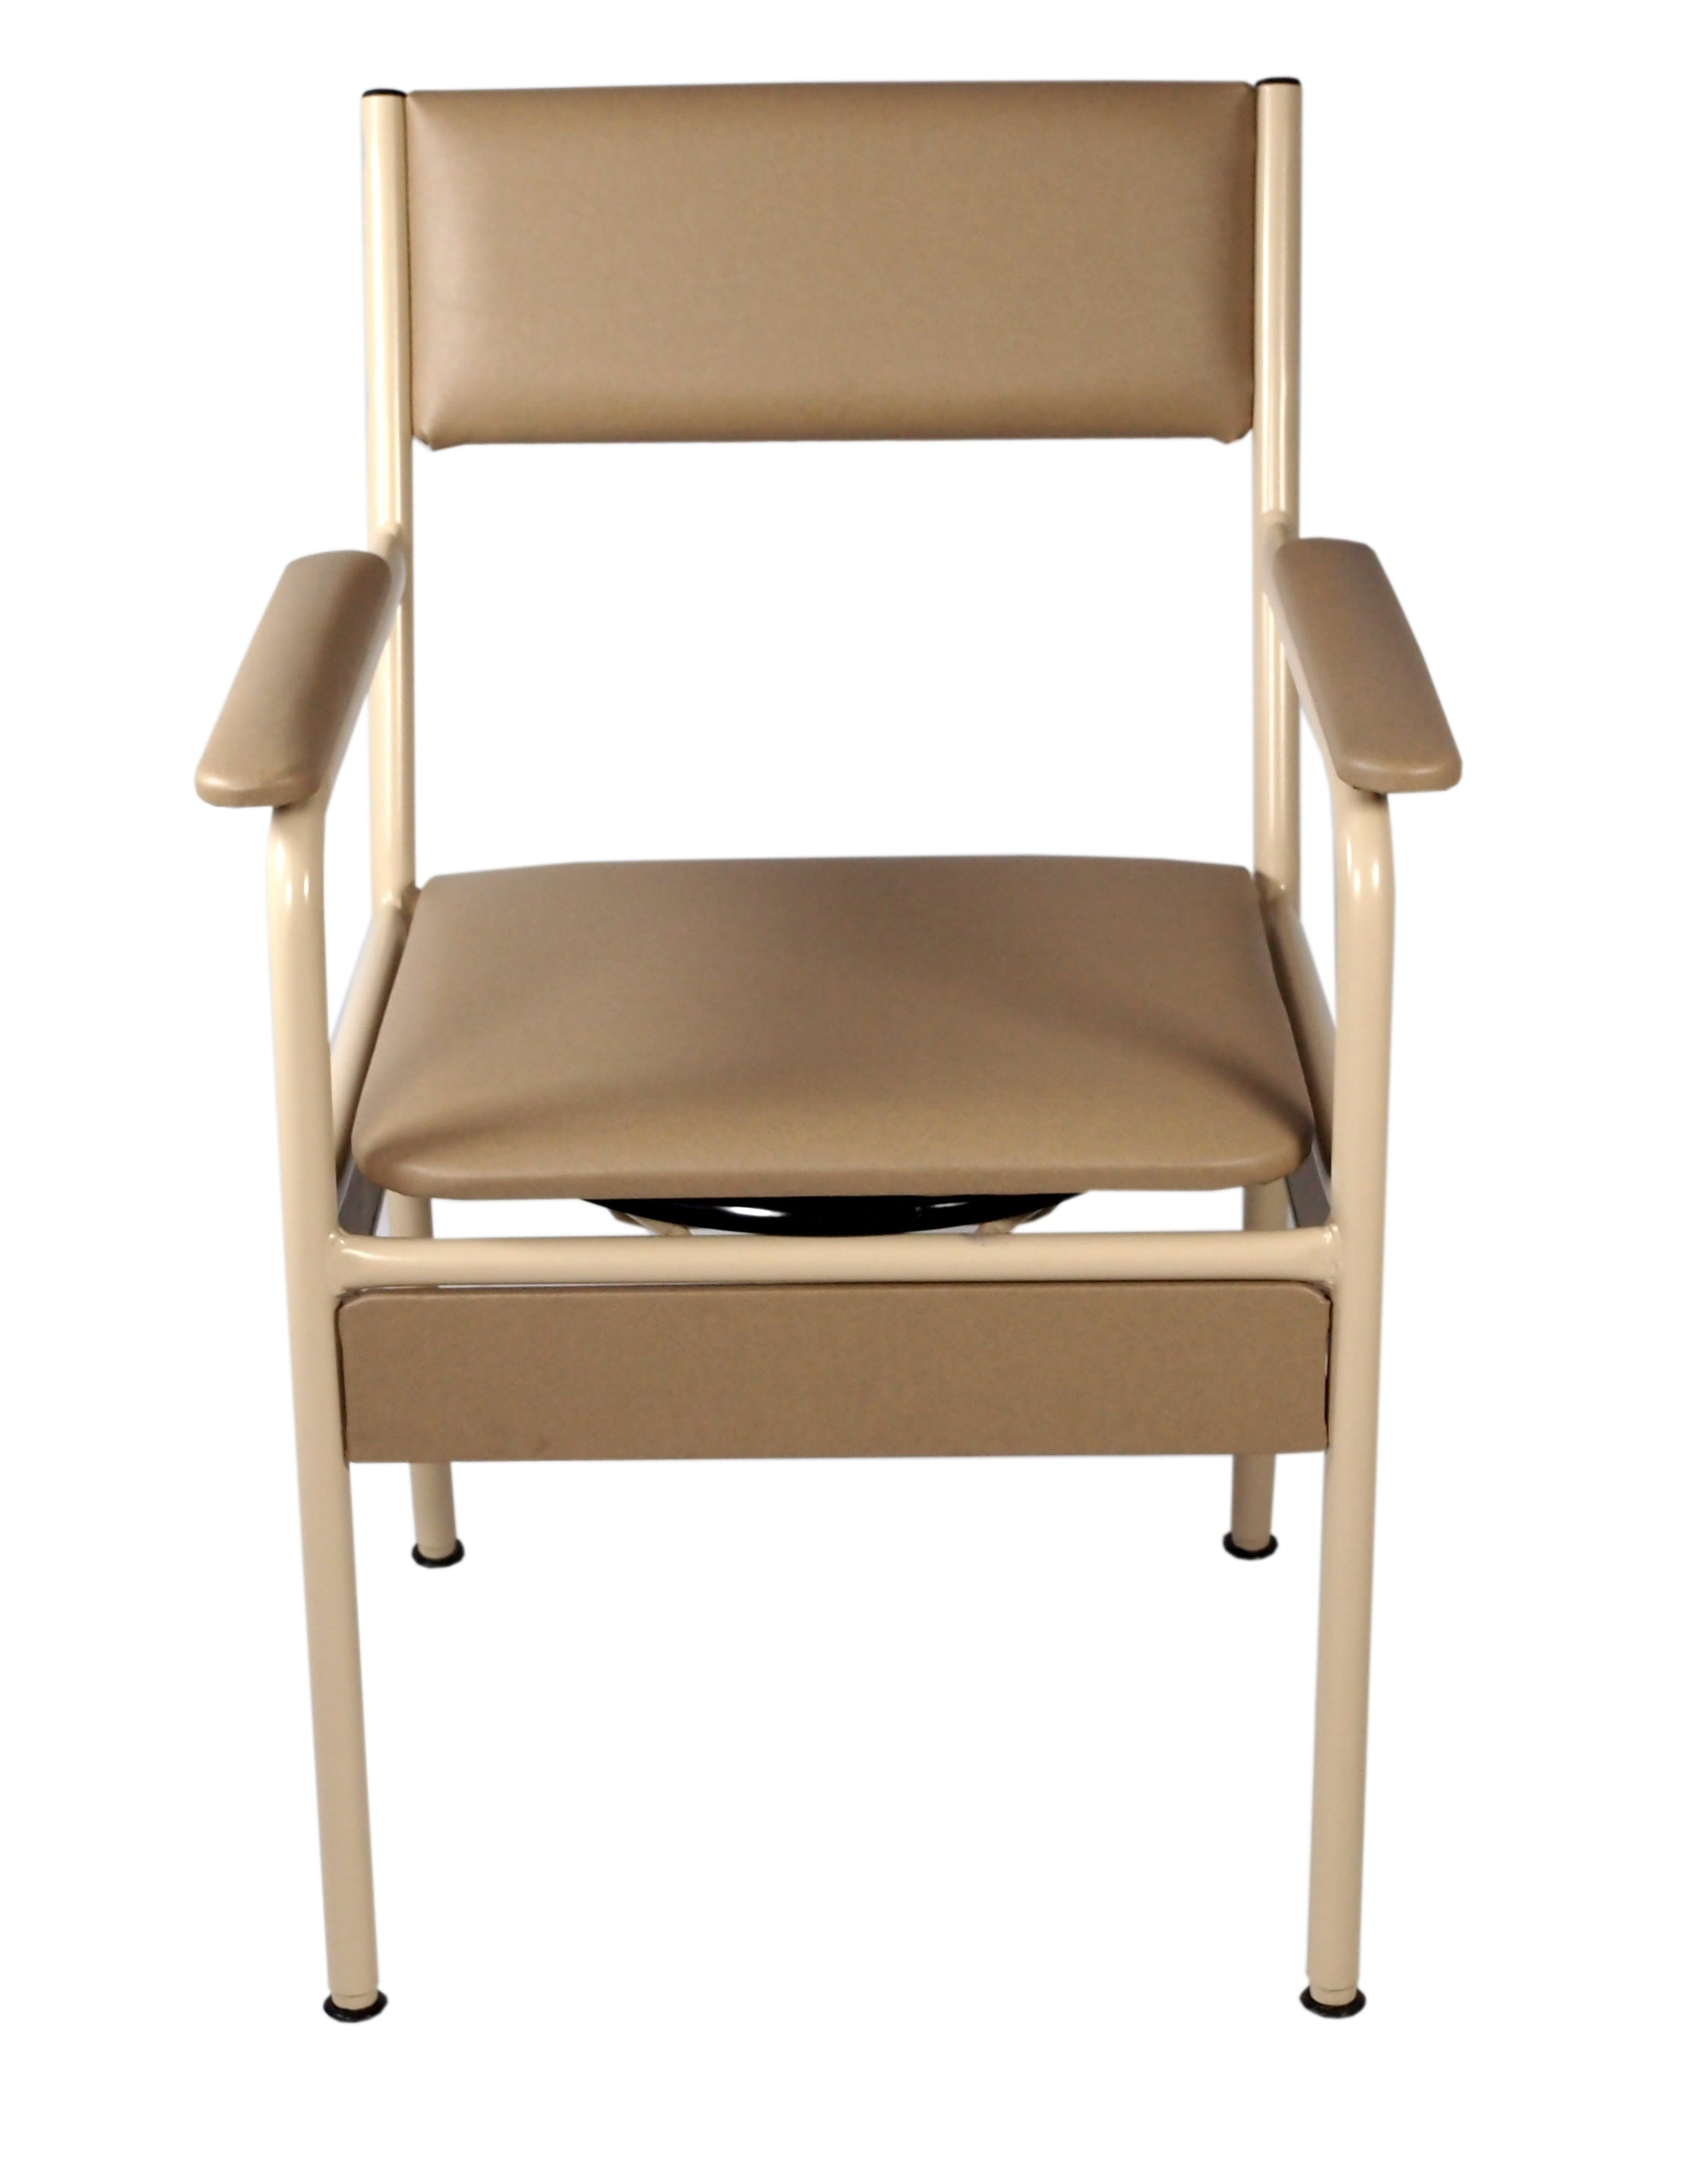 Heavy Duty Bariatric Commode Chair - Endeavour Life Care